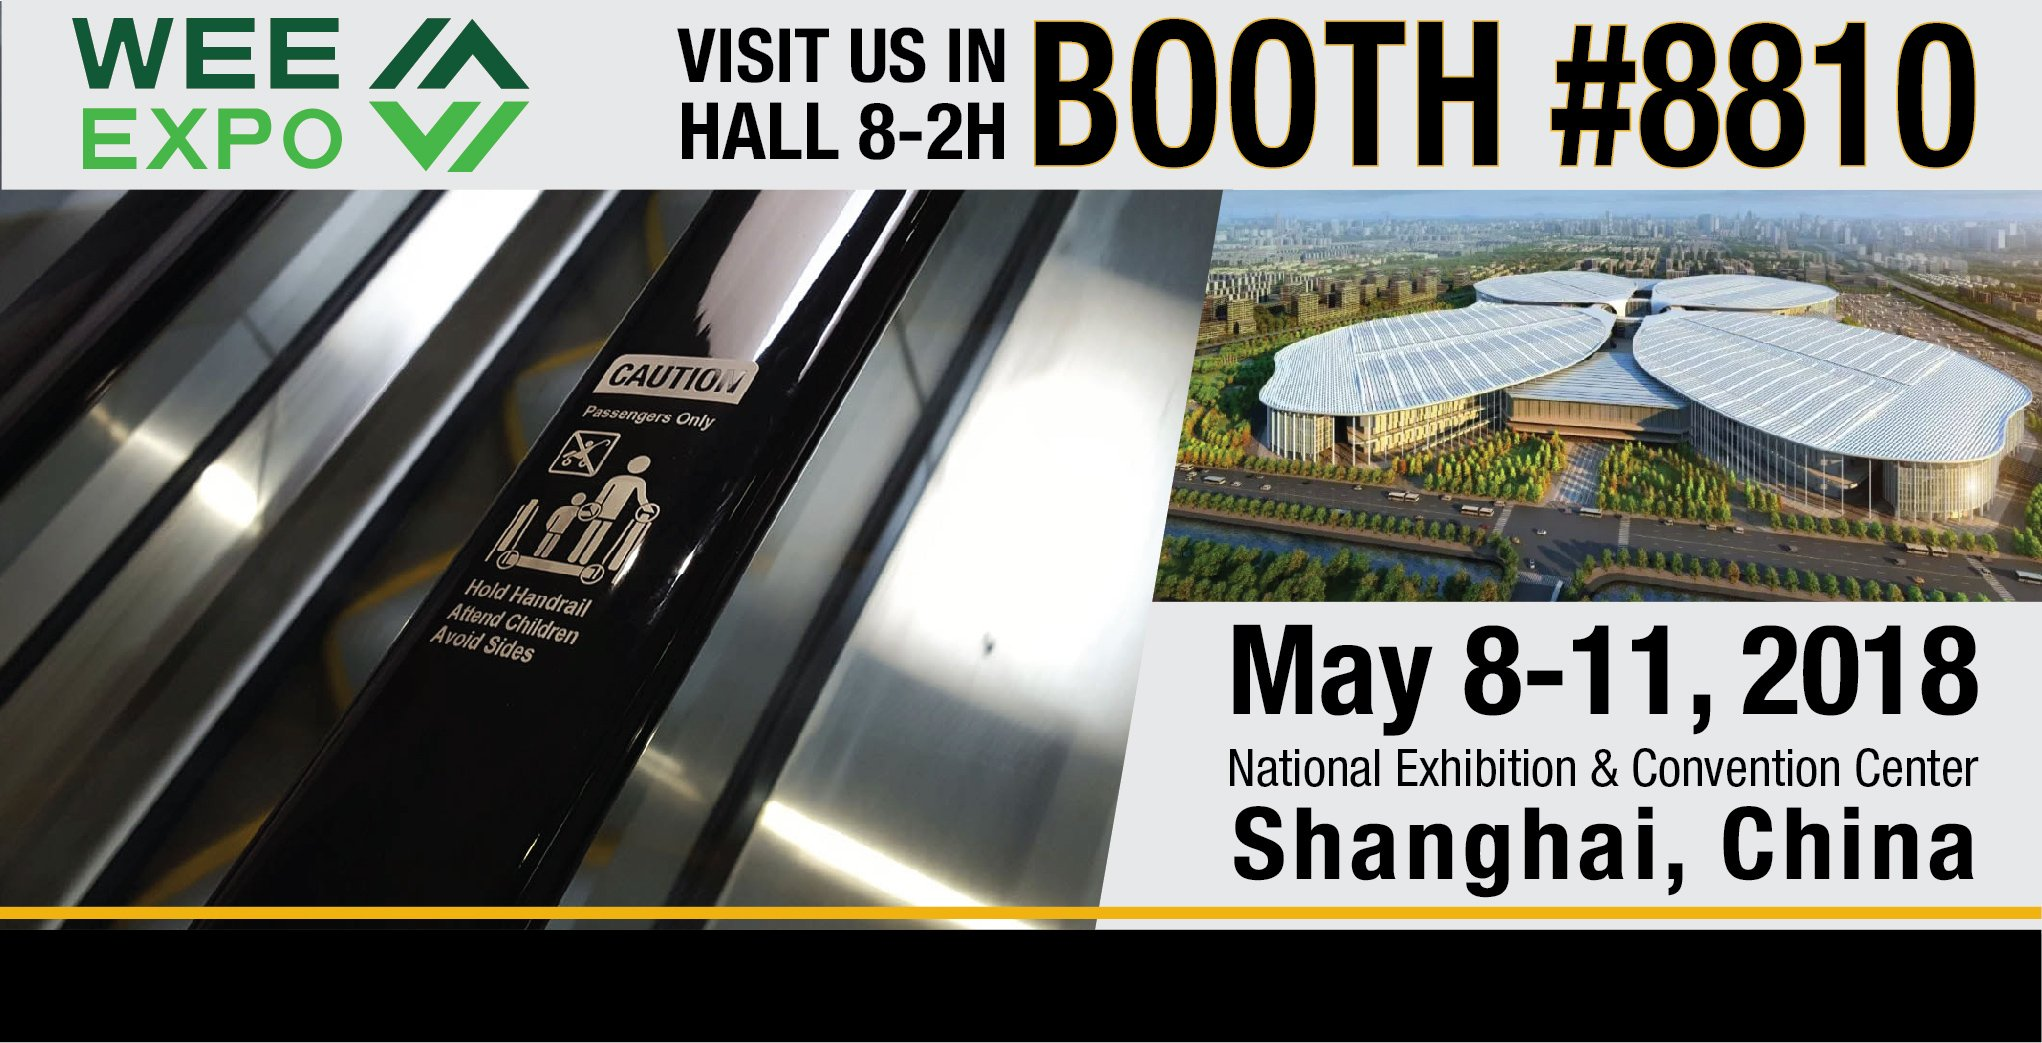 World Elevator and Escalator Expo (WEE Expo) – EHC Global